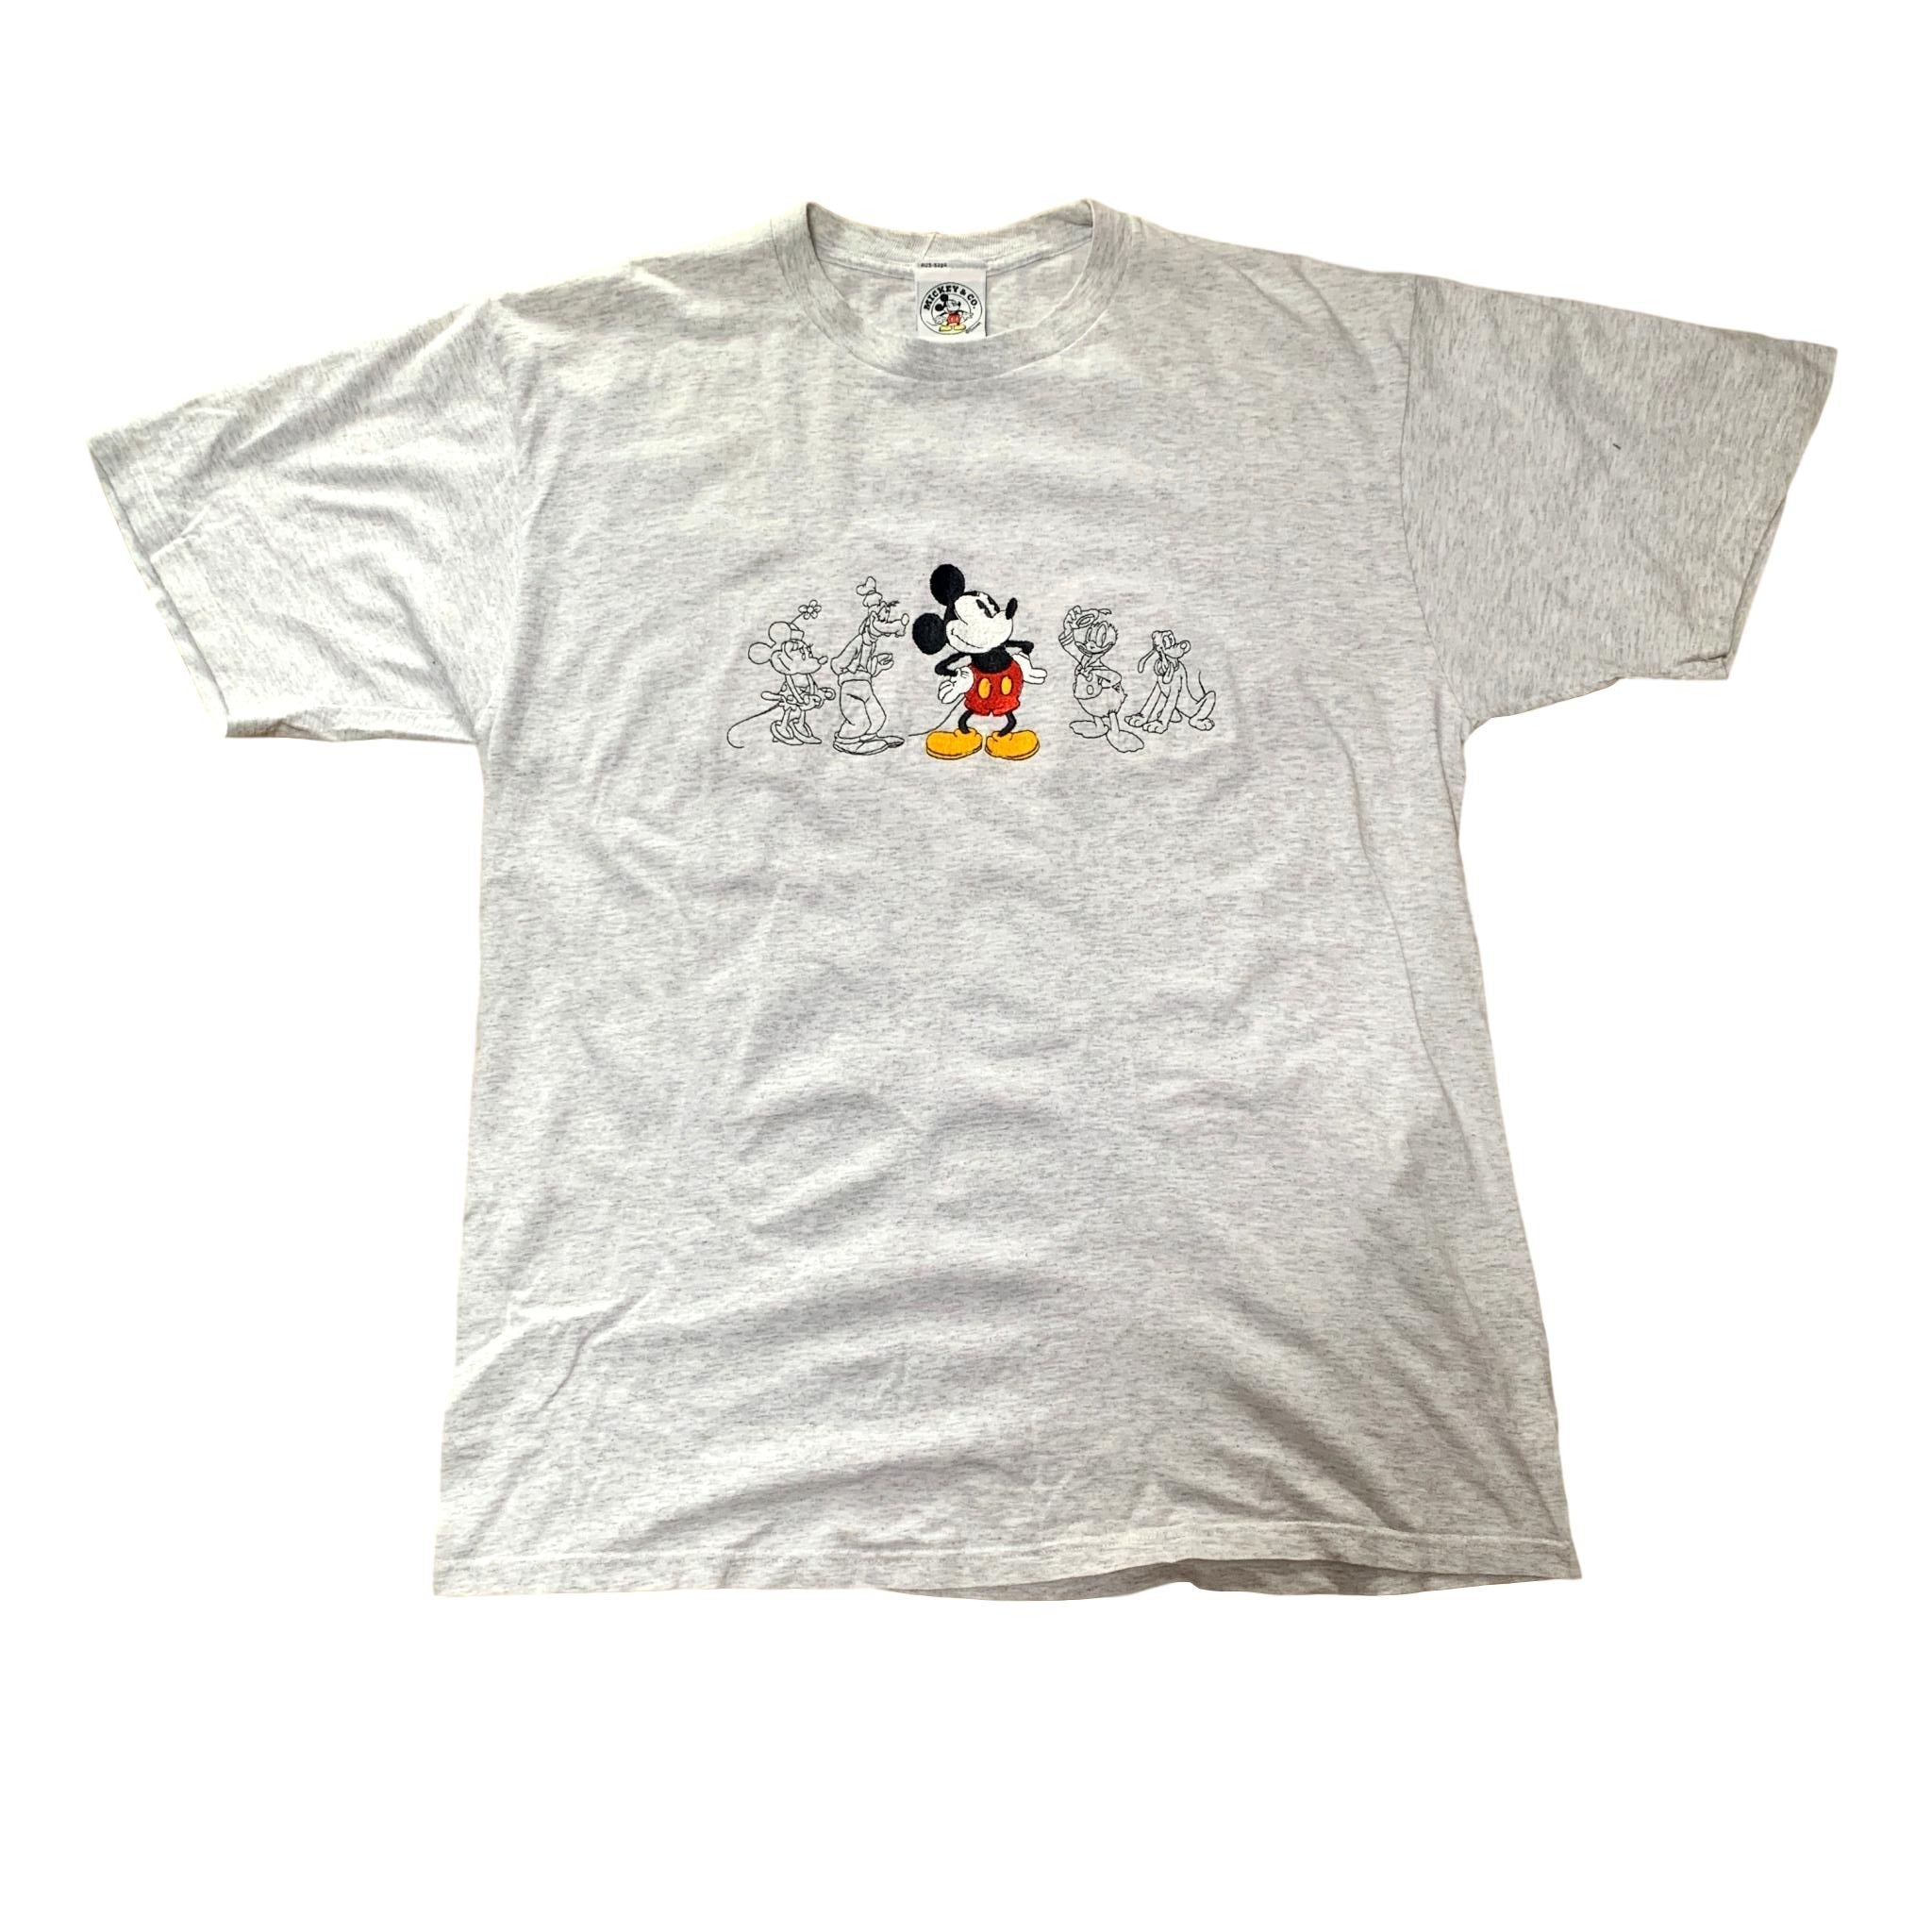 Vintage Disney Mickey Mouse T Shirt (L)